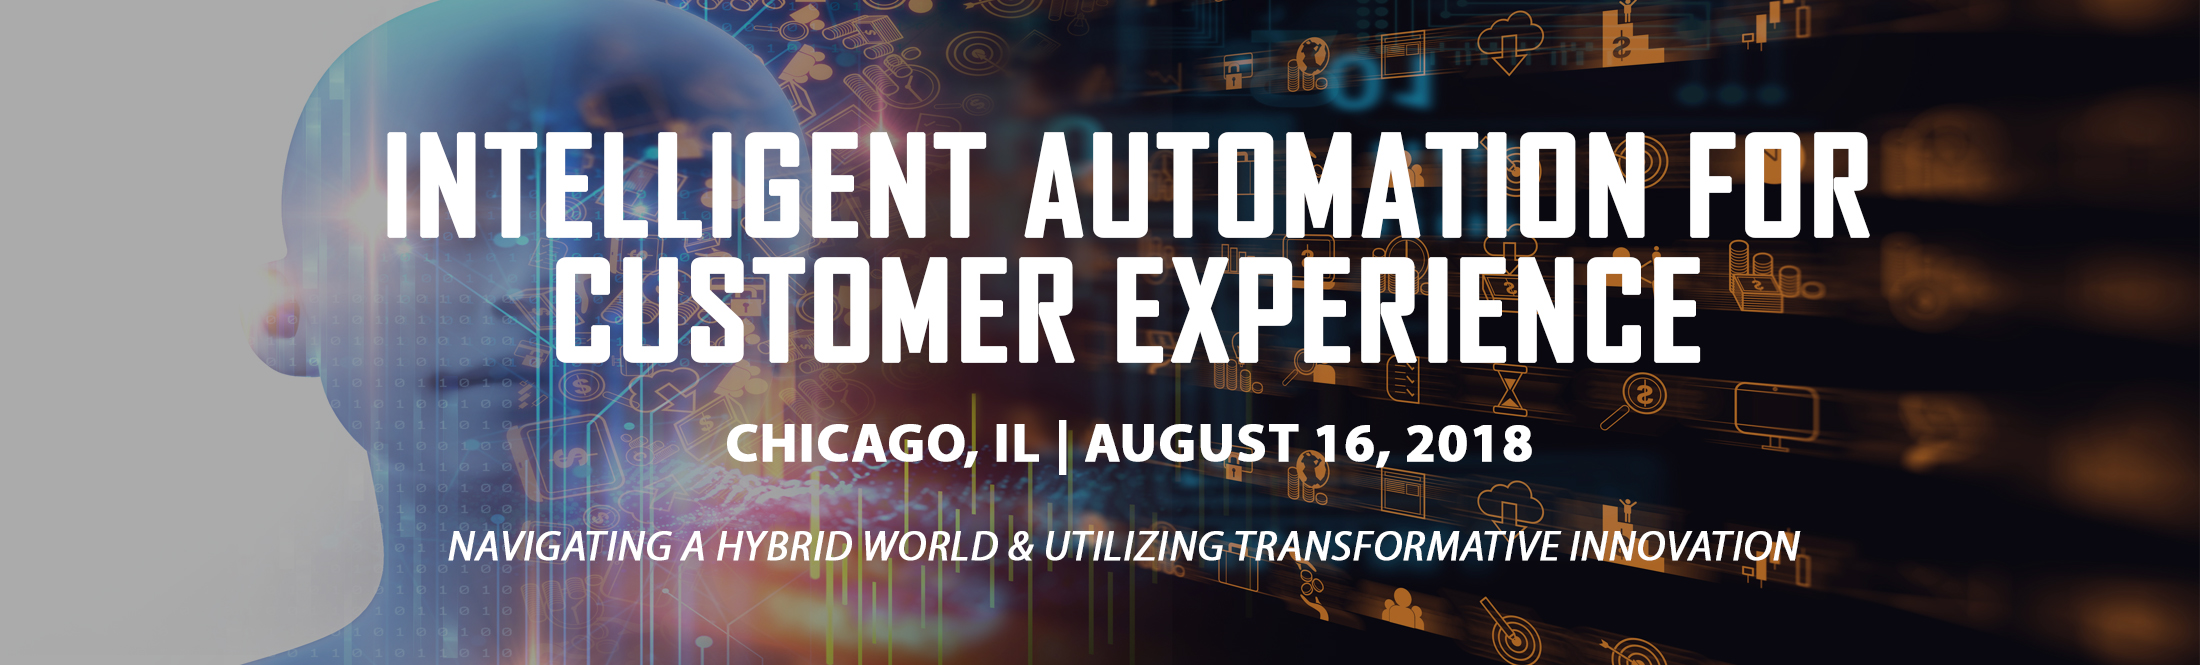 Intelligent Automation For Customer Experience - Chicago